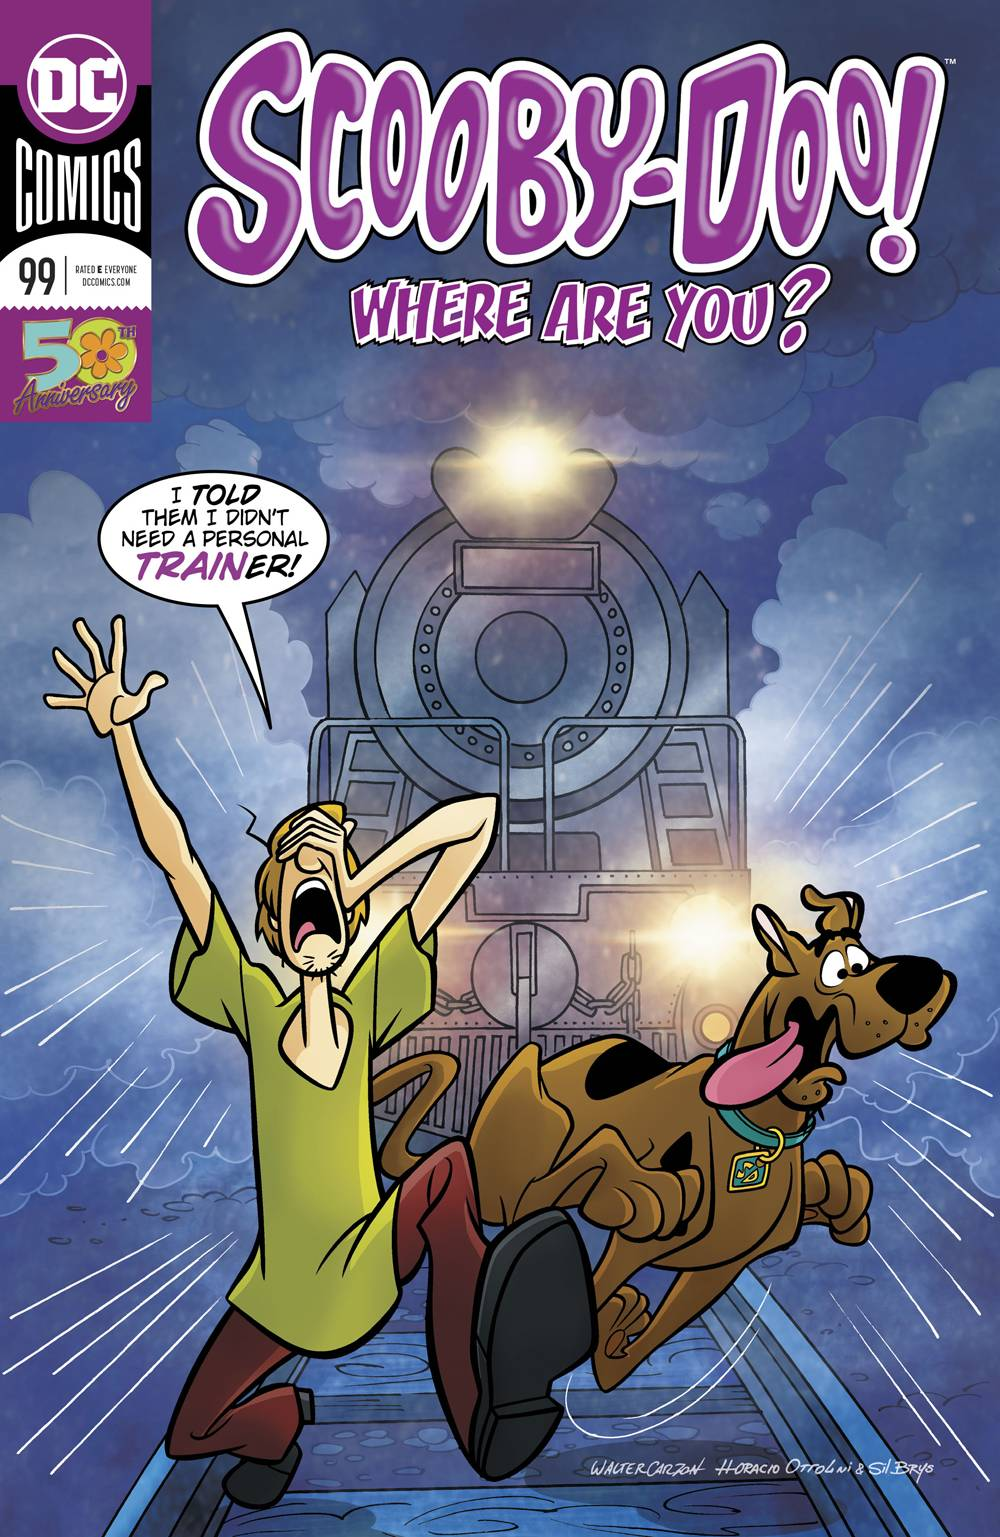 SCOOBY DOO WHERE ARE YOU 99.jpg